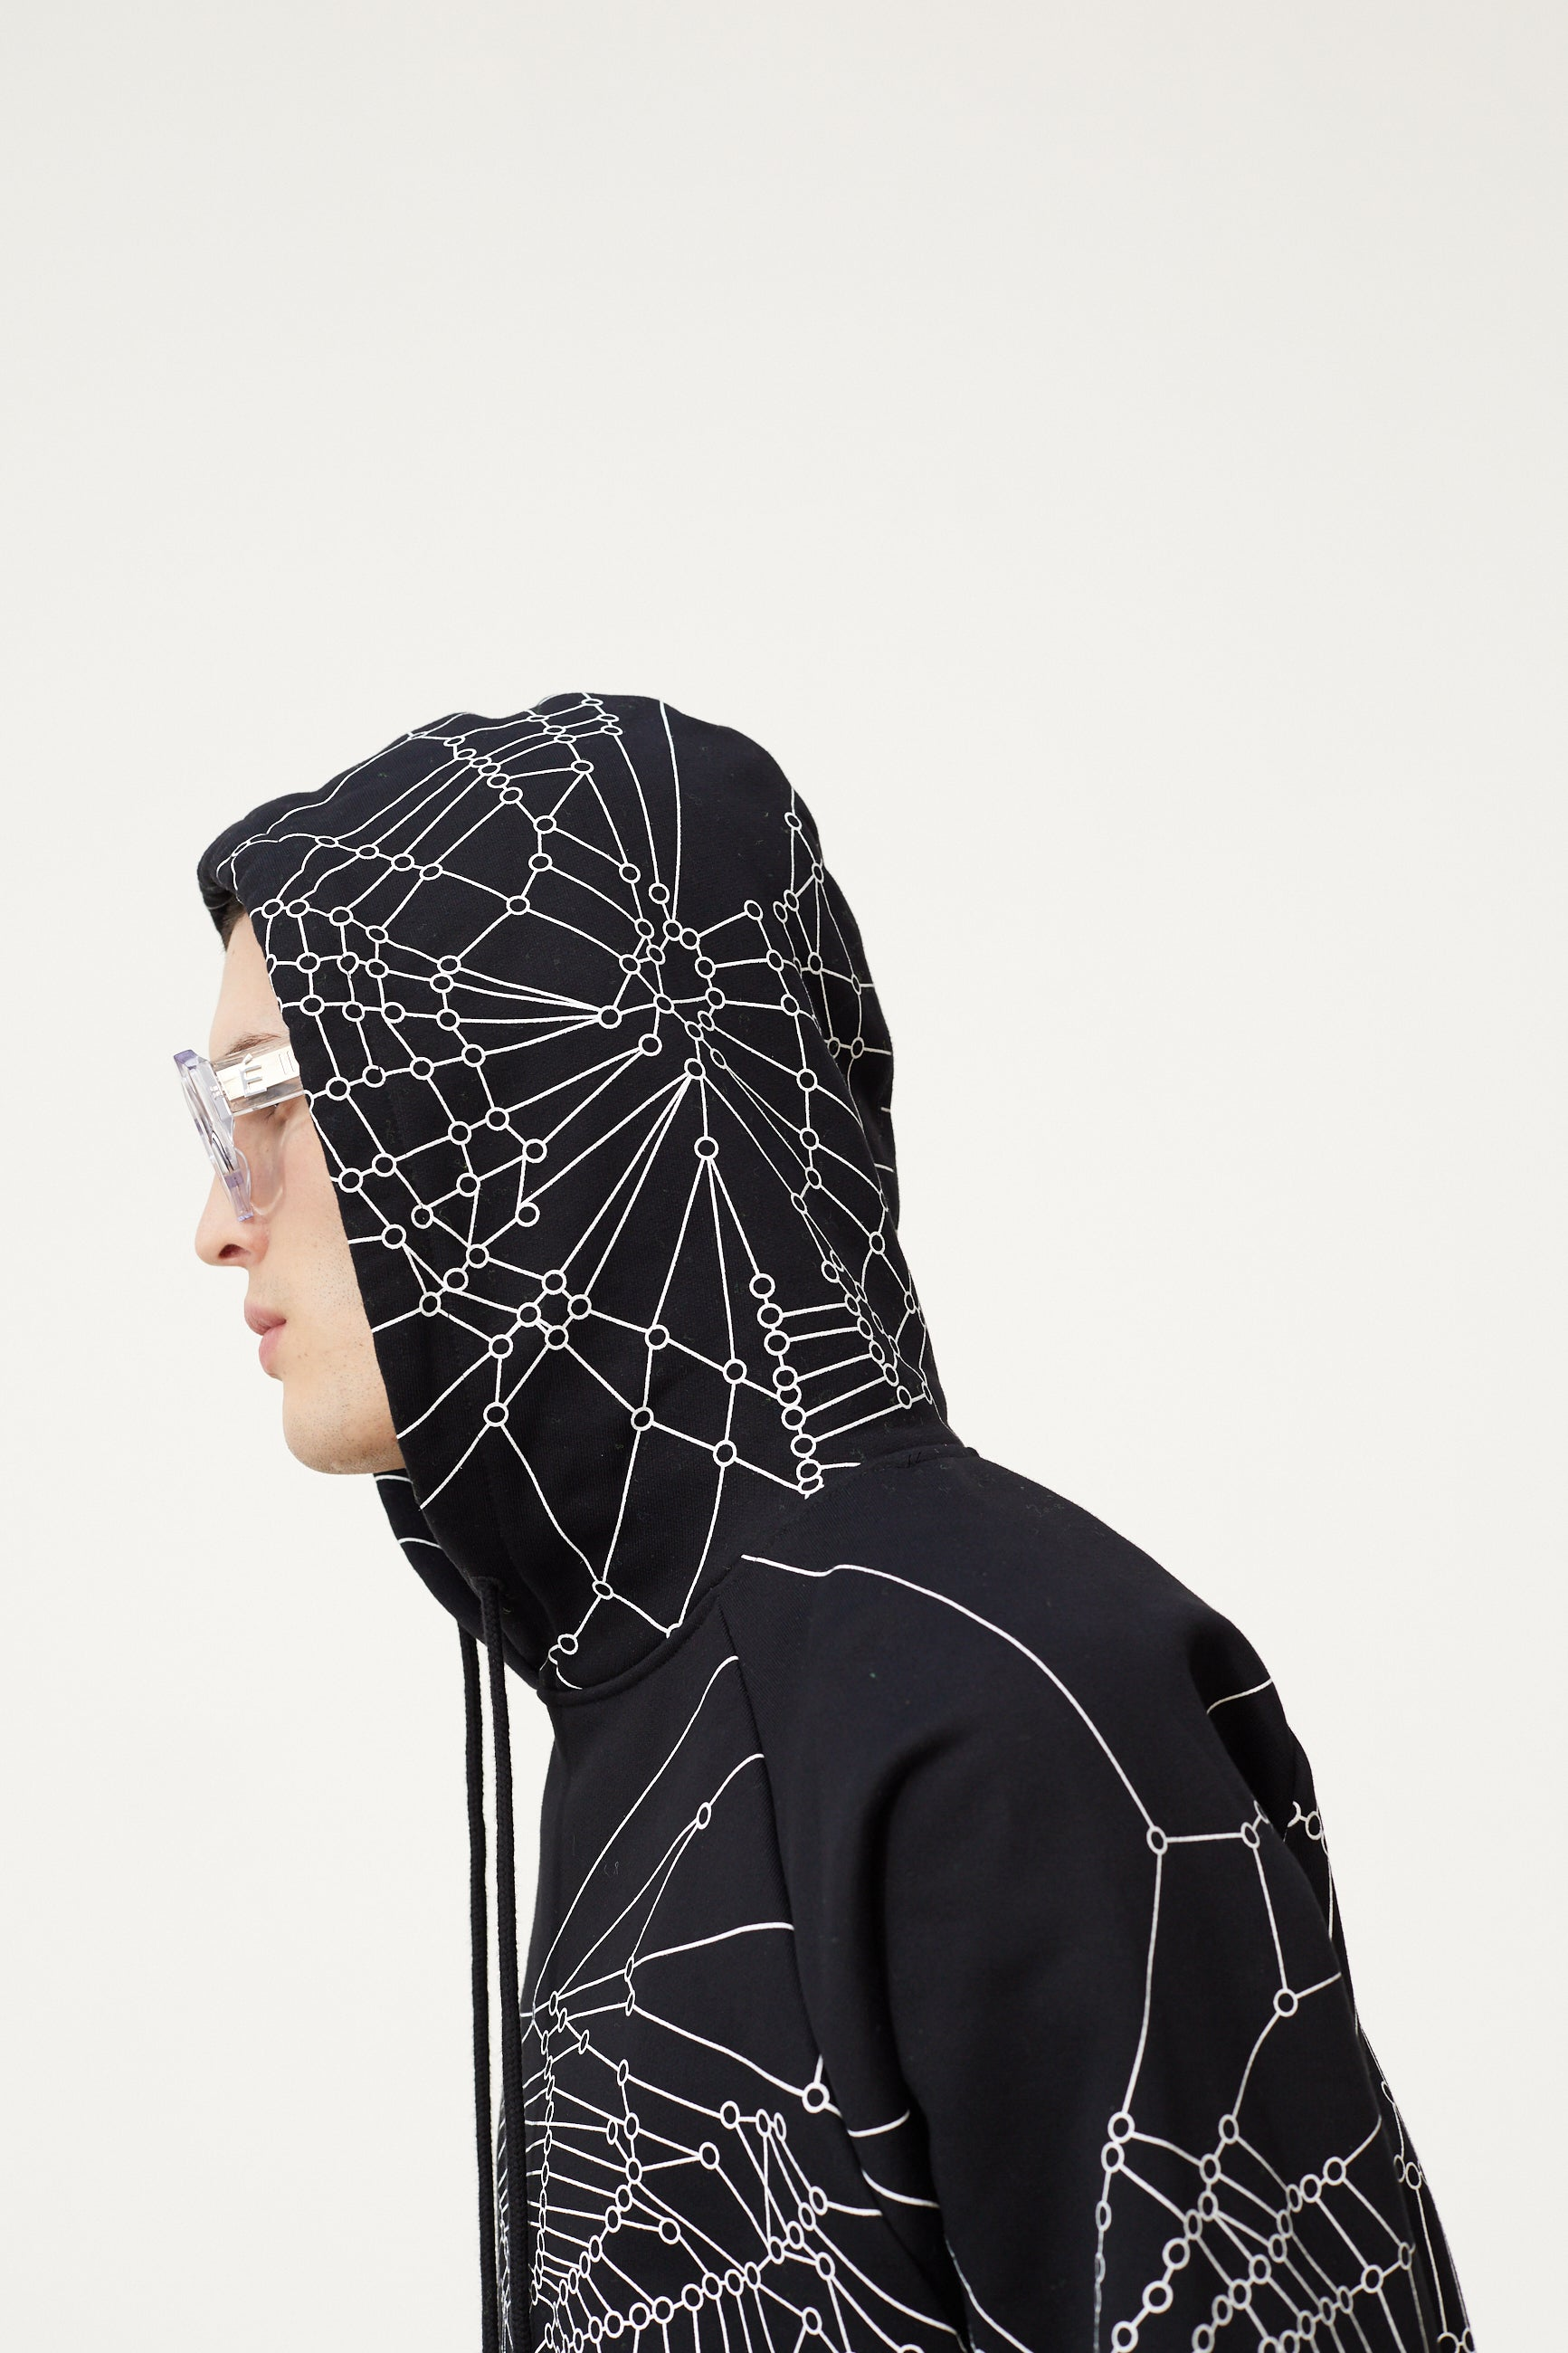 Études Racing Hood Spider Web Black Sweatshirt 6